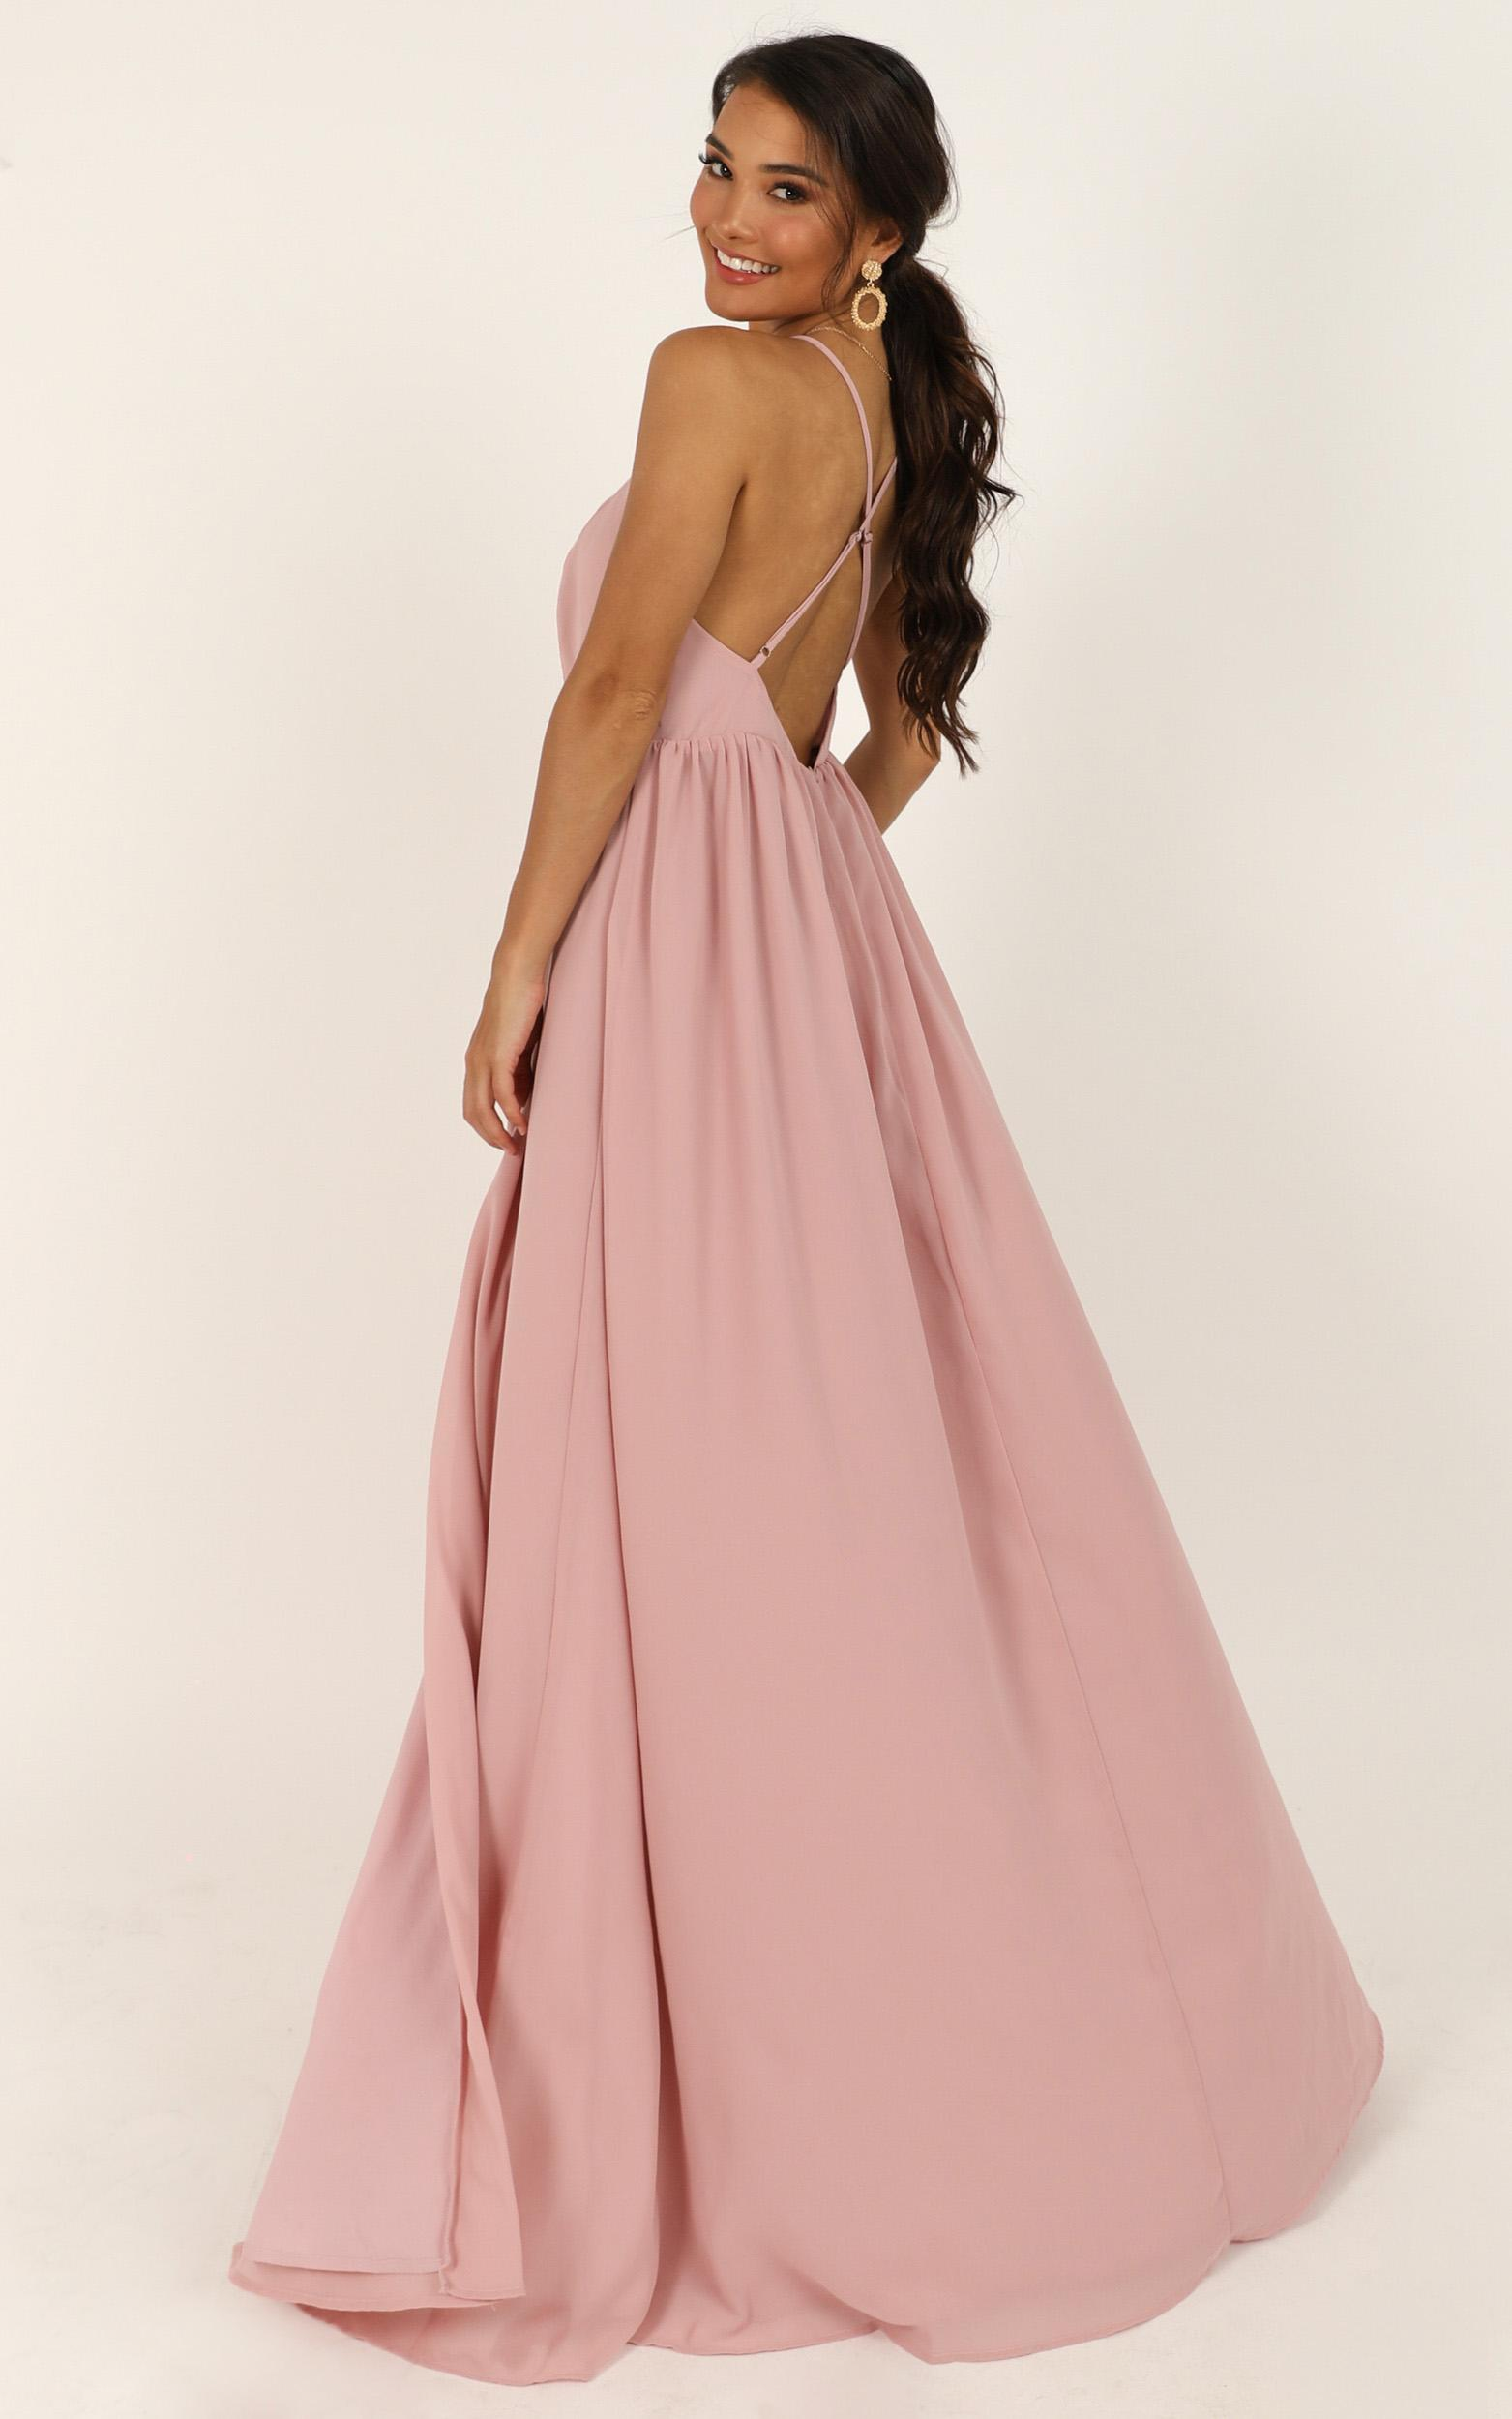 My Kind Of Prom Dress in blush - 20 (XXXXL), Blush, hi-res image number null